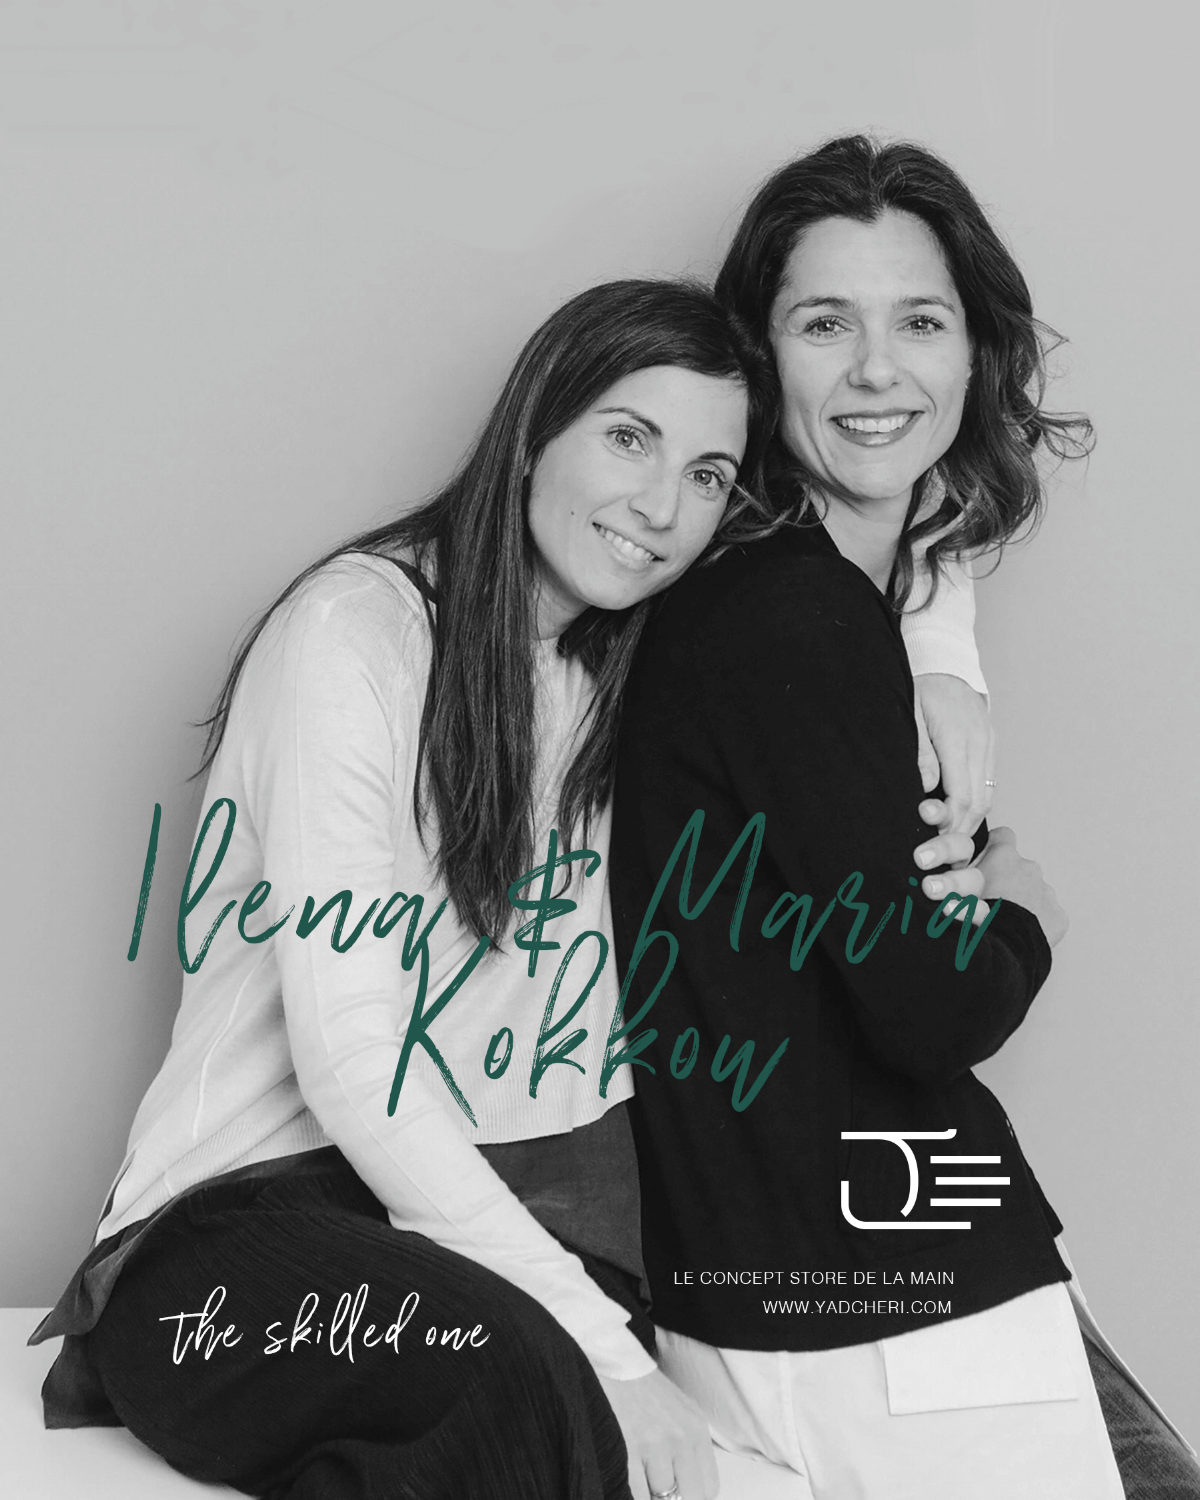 Siblings share an inextricable, one-of-a-kind bond. They are close yet different, sometimes they can even read each other's mins. Ilena & Maria Kokkou are the perfect example of this sisterly chemistry.